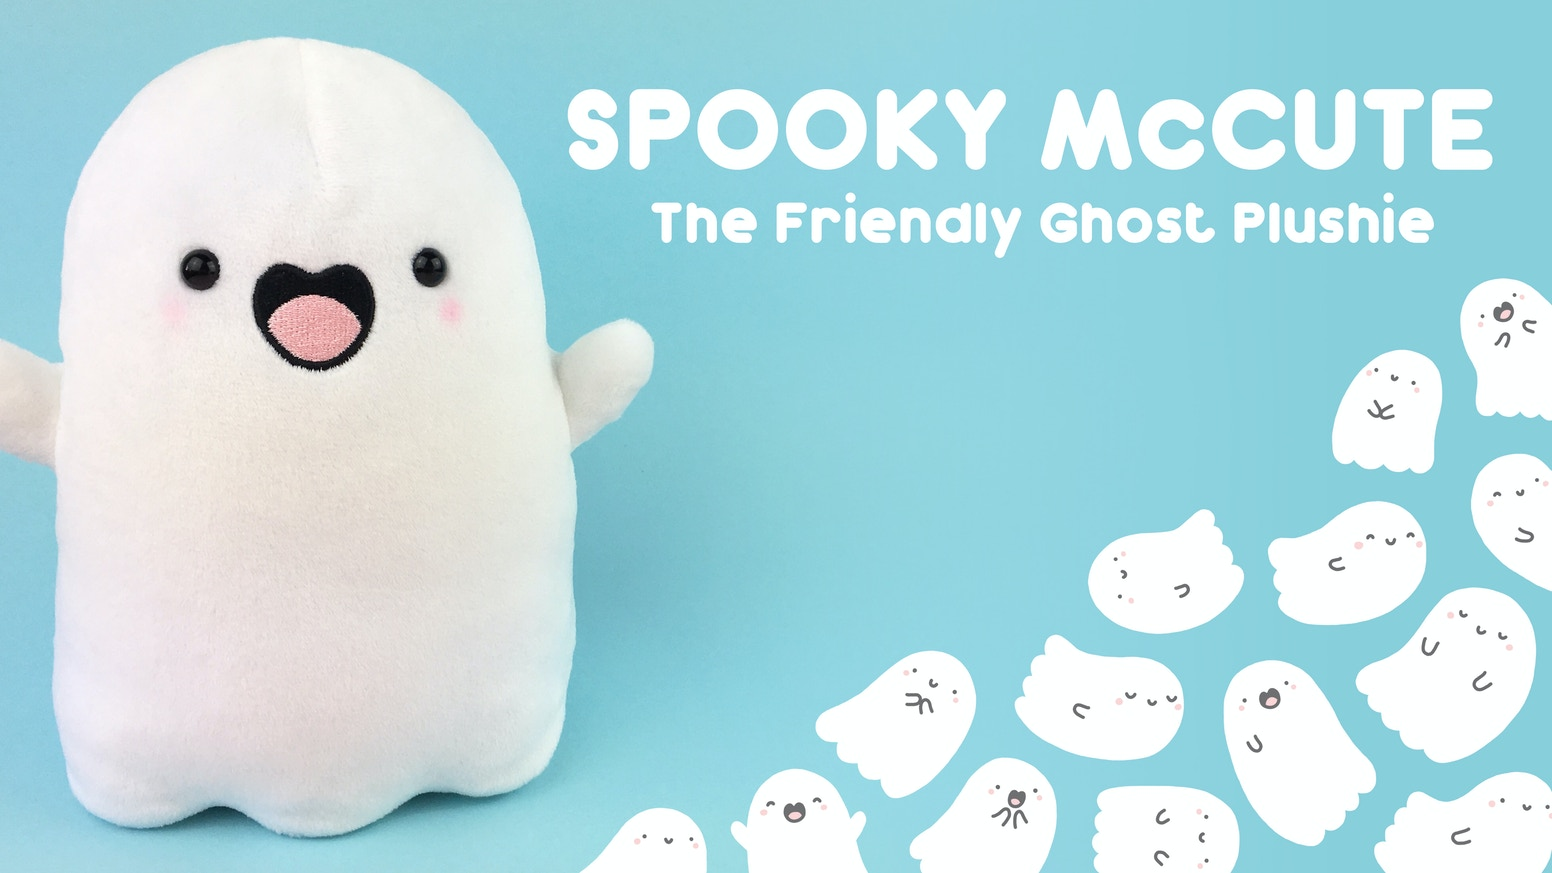 Spooky McCute - the Friendly Ghost Plushie!